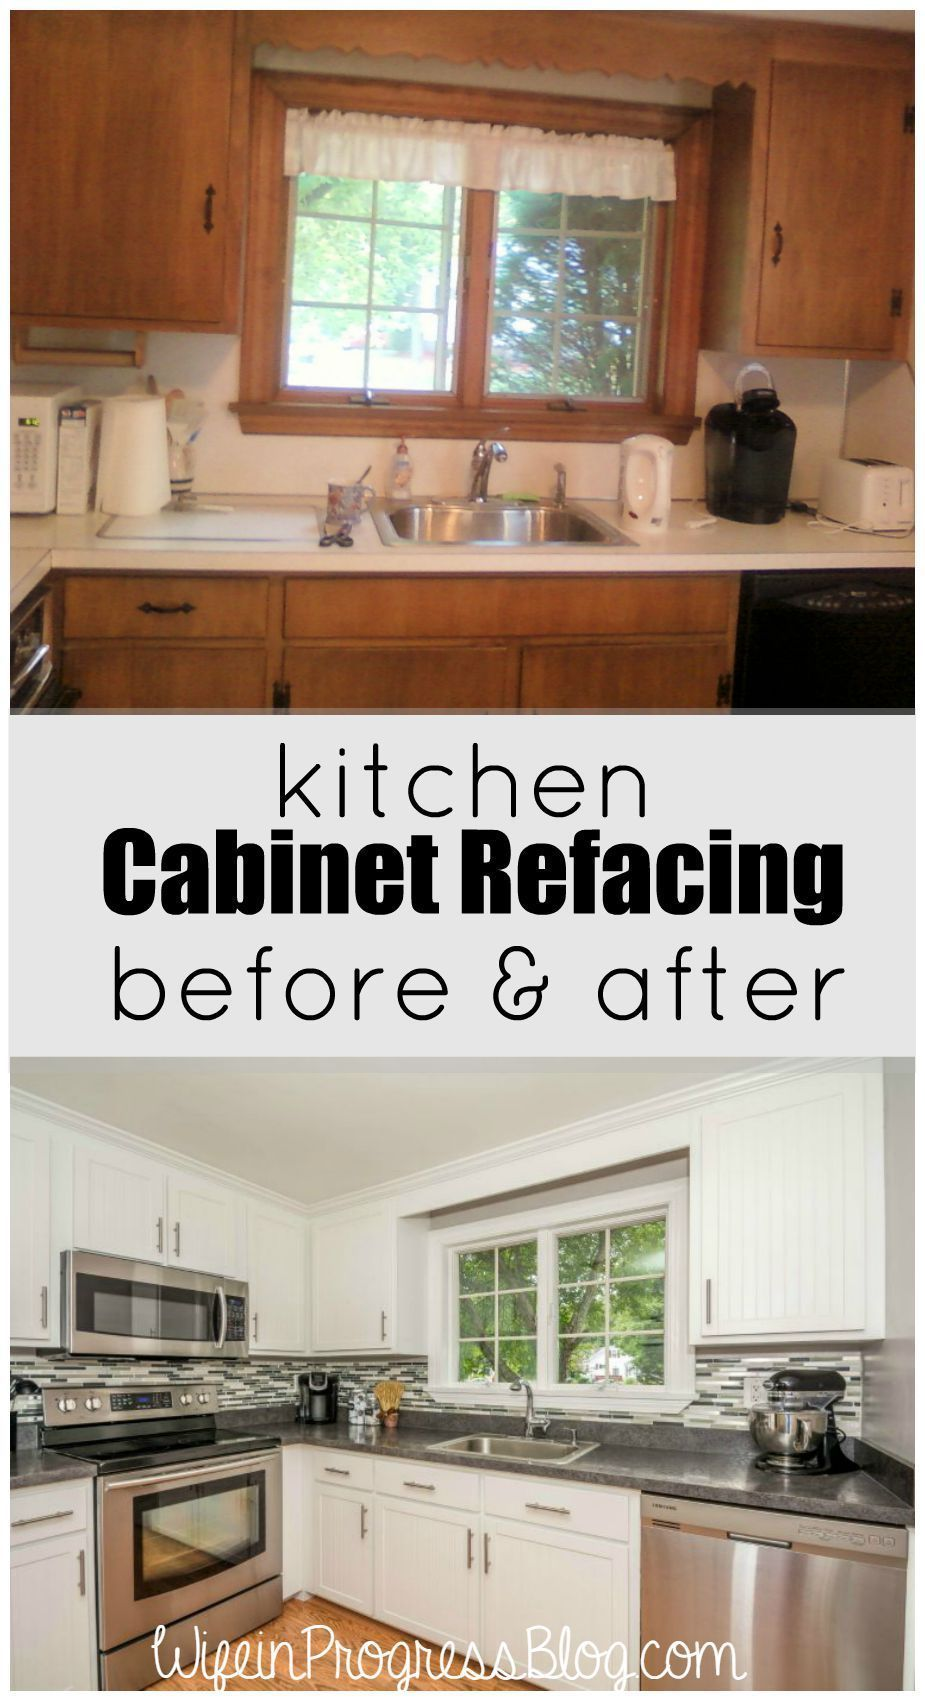 Kitchen Cabinet Refacing The Process In 2020 Cheap Kitchen Cabinets Old Kitchen Cabinets Cabinet Refacing